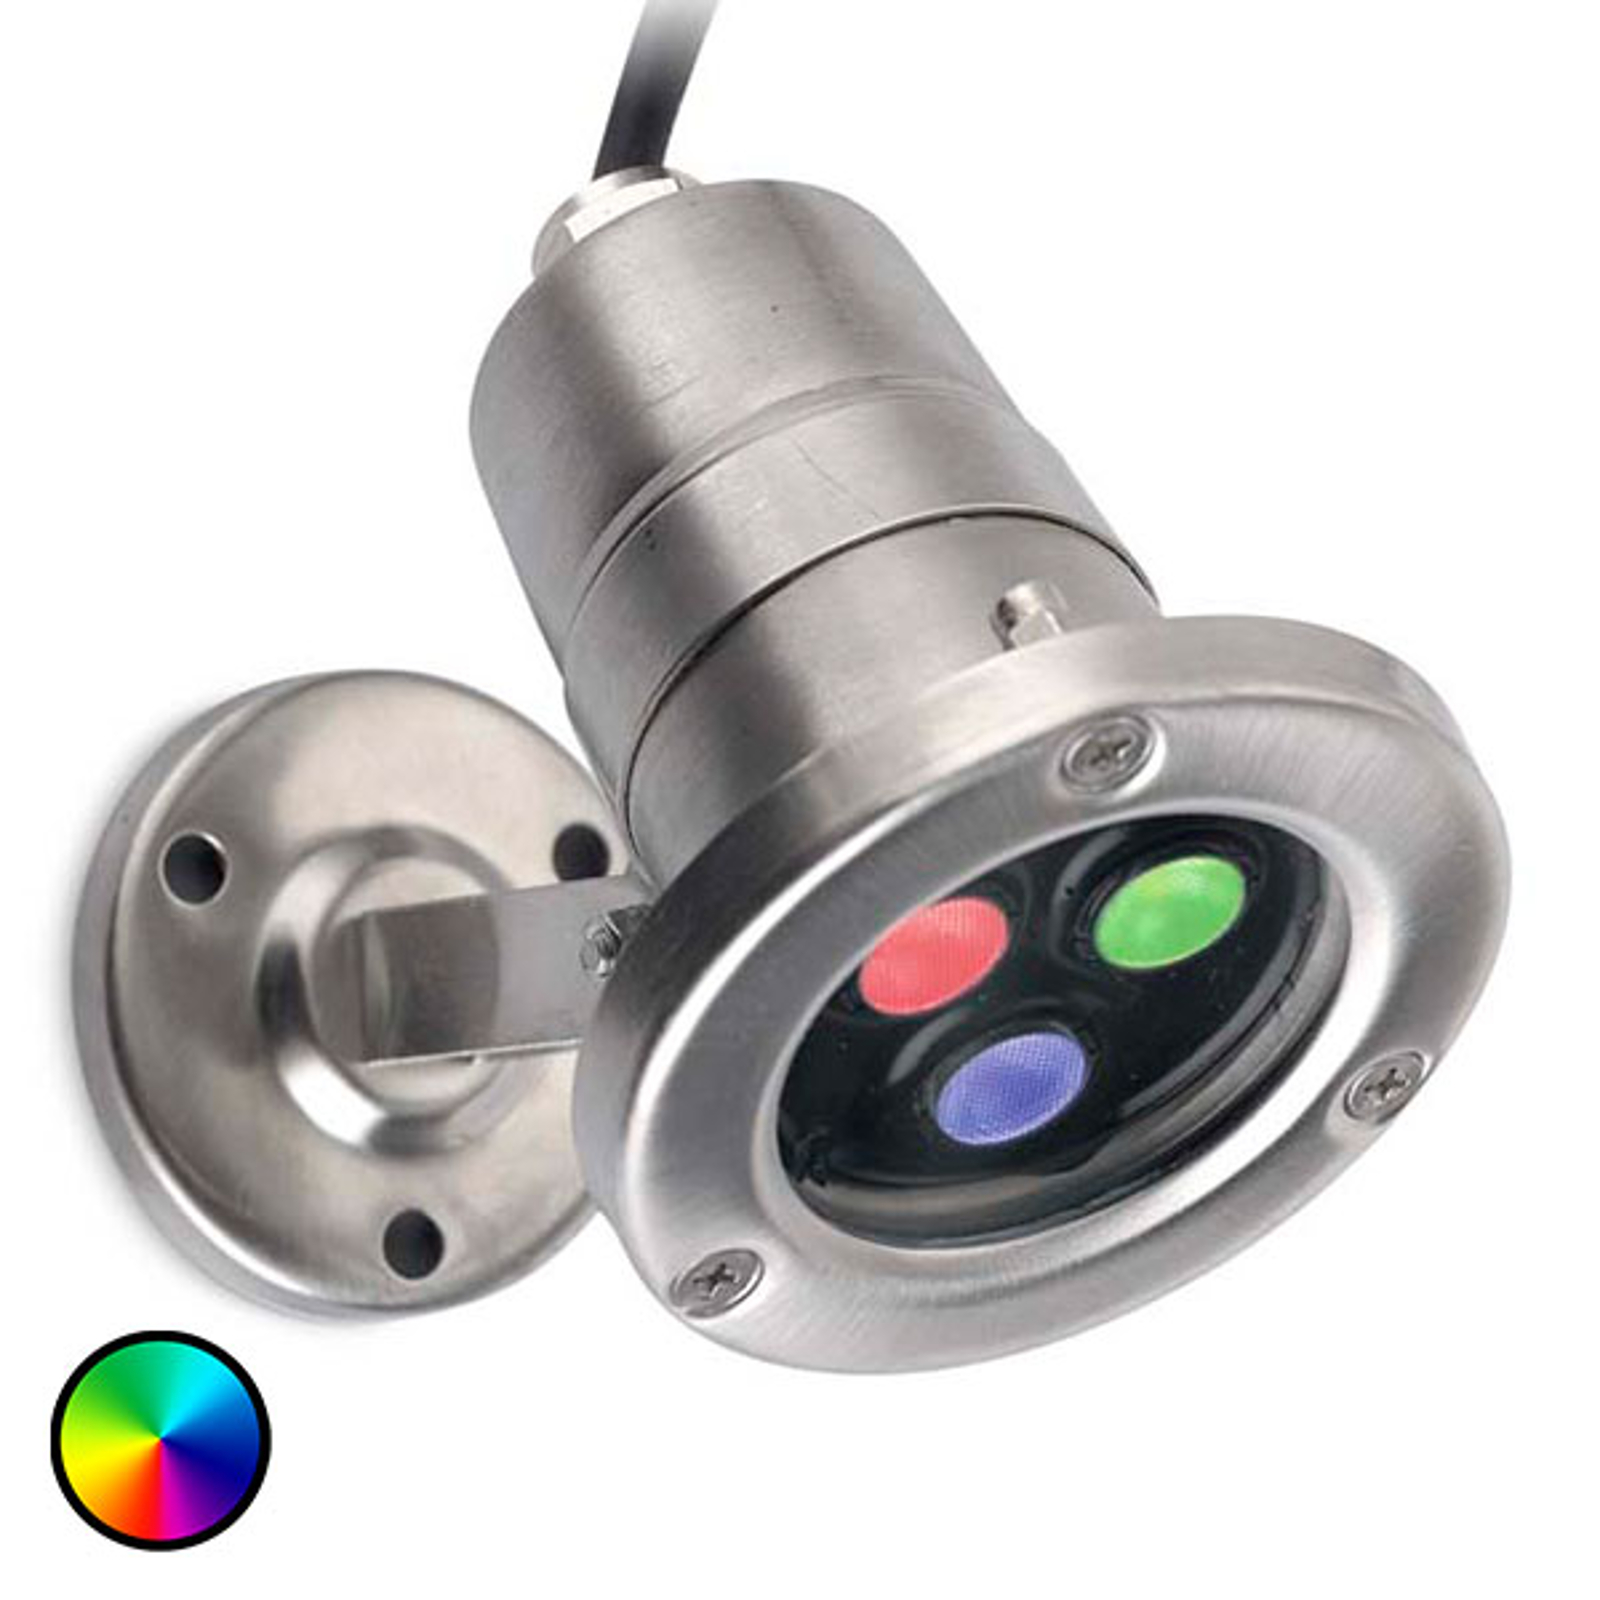 LED-Wasserleuchte Aqua Waterproof RGB